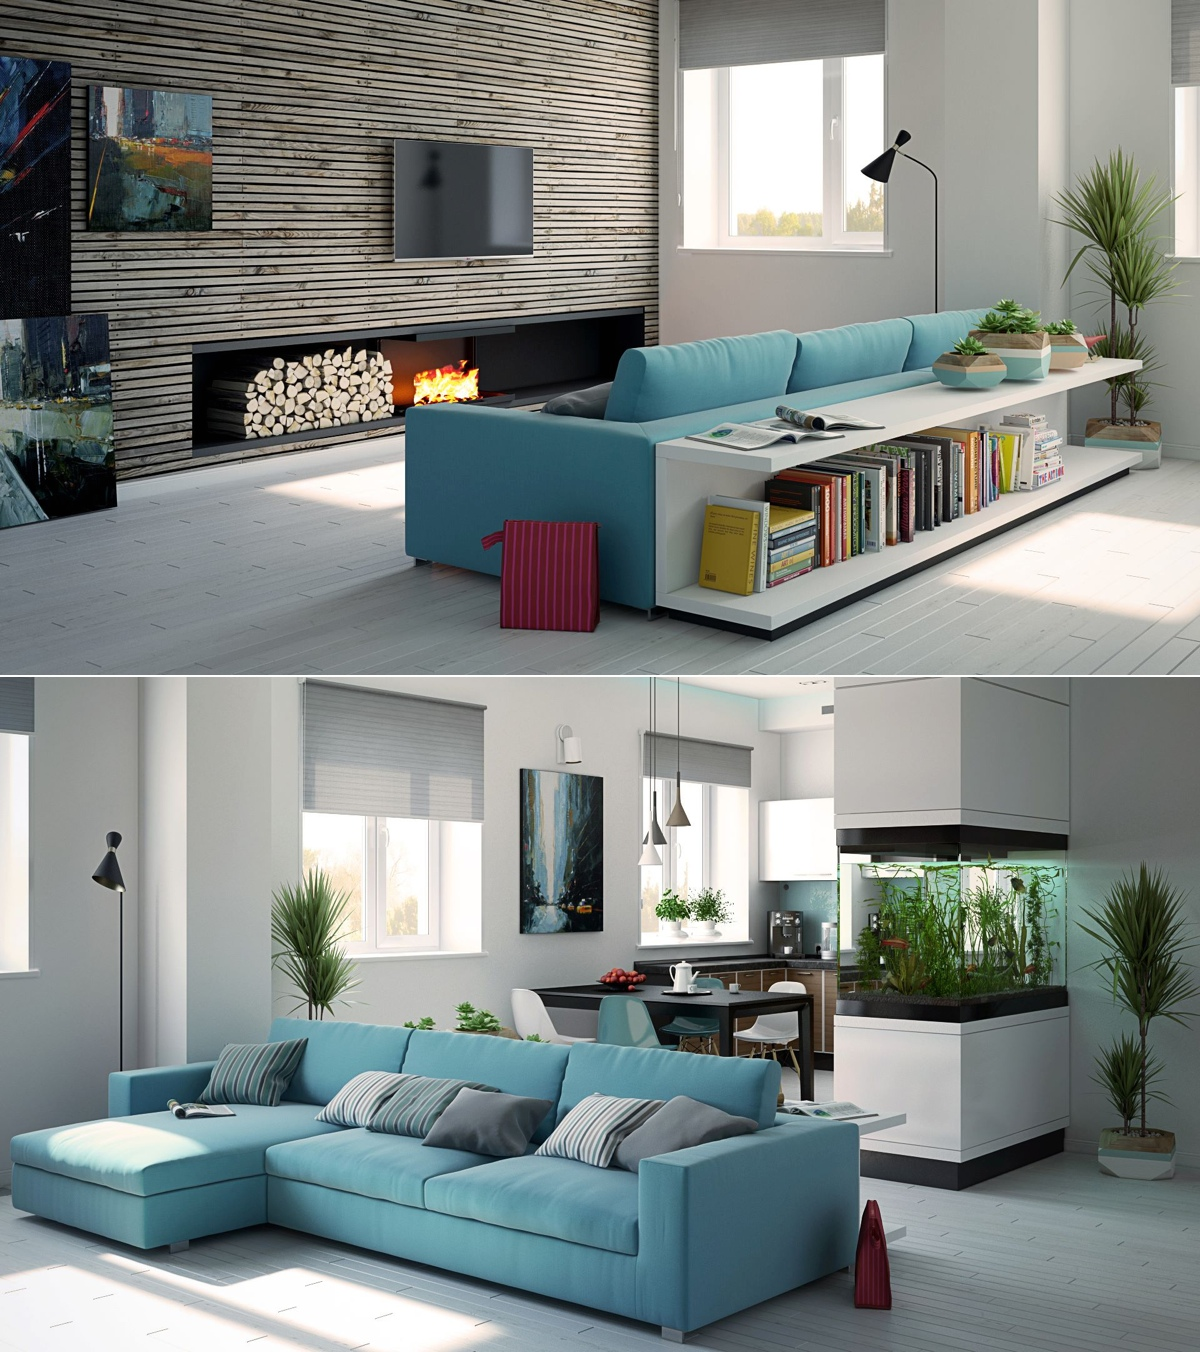 awesomely stylish urban living rooms. Black Bedroom Furniture Sets. Home Design Ideas